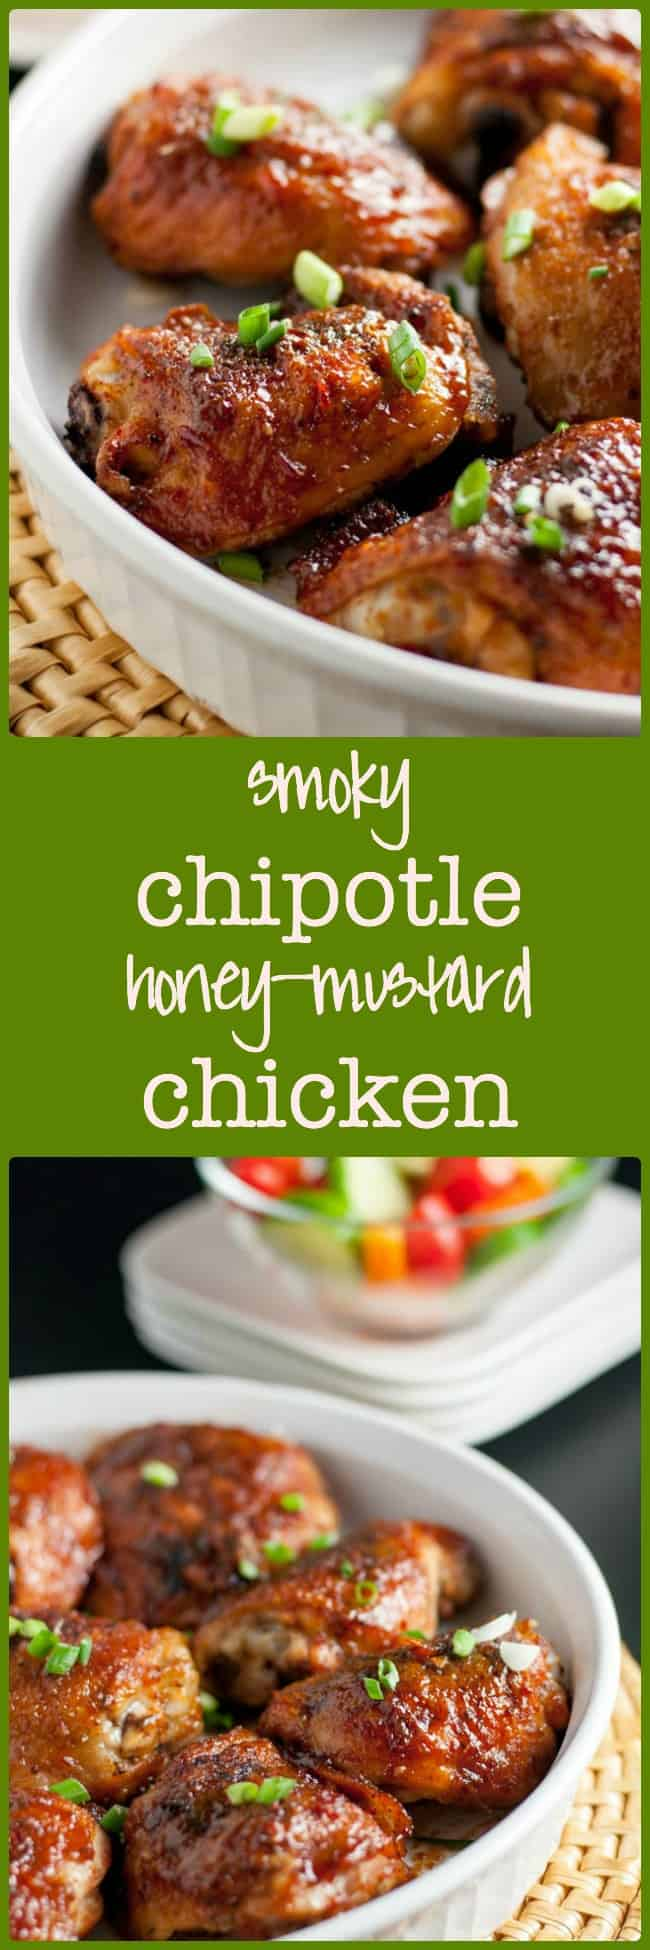 Smoky Chipotle Honey-Mustard Glazed Chicken Thighs. Juicy chicken, crispy skin with just the right amount of heat. An easy weeknight meal.